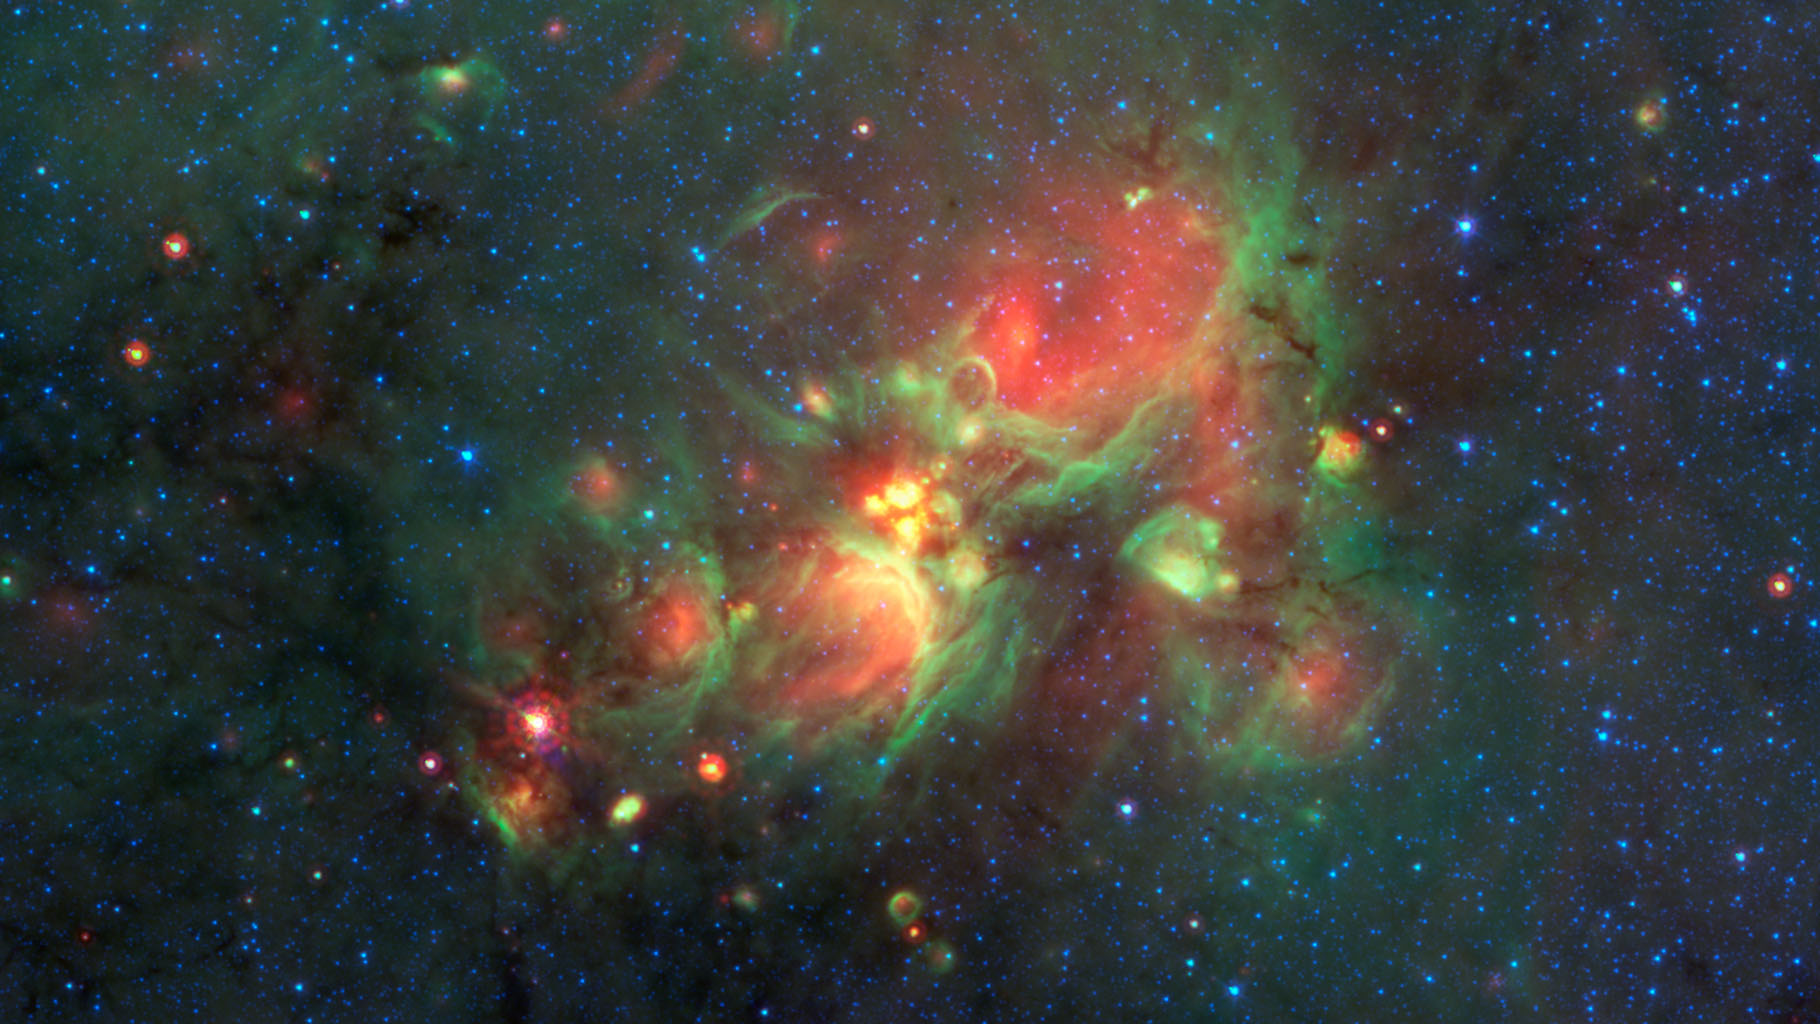 space galaxy formation - photo #36